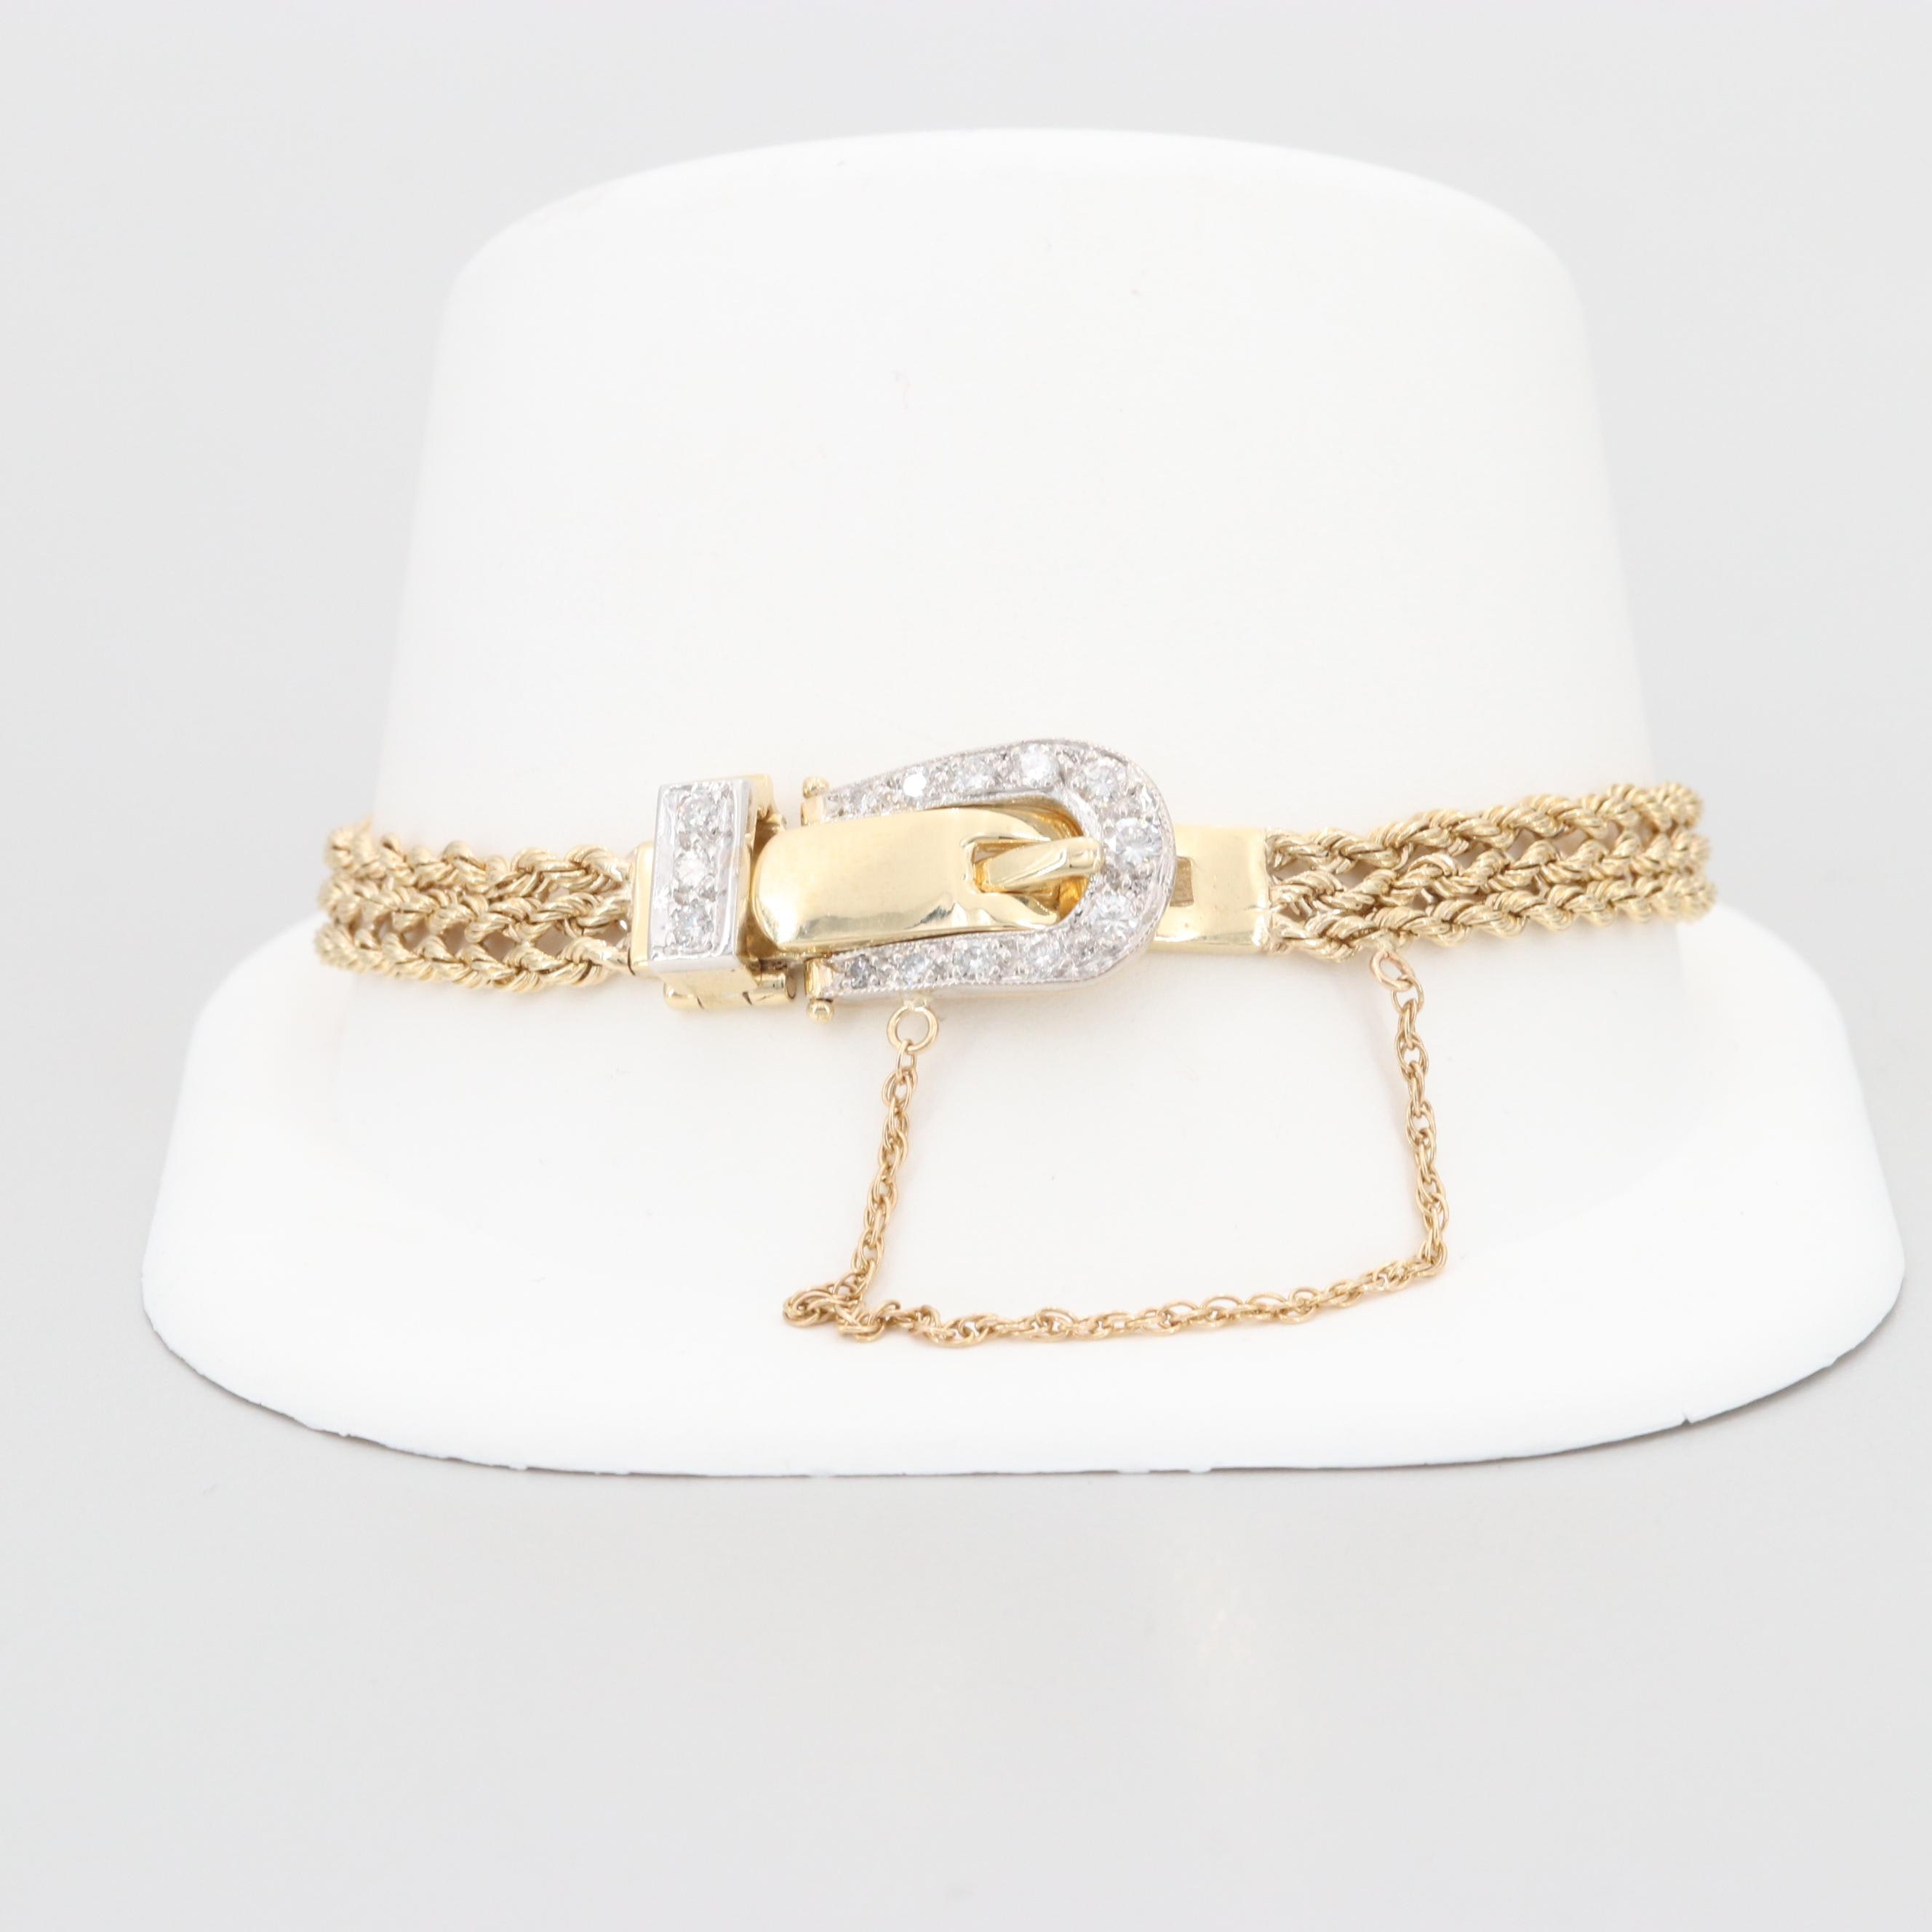 14K Yellow Gold Diamond Buckle Clasp Bracelet